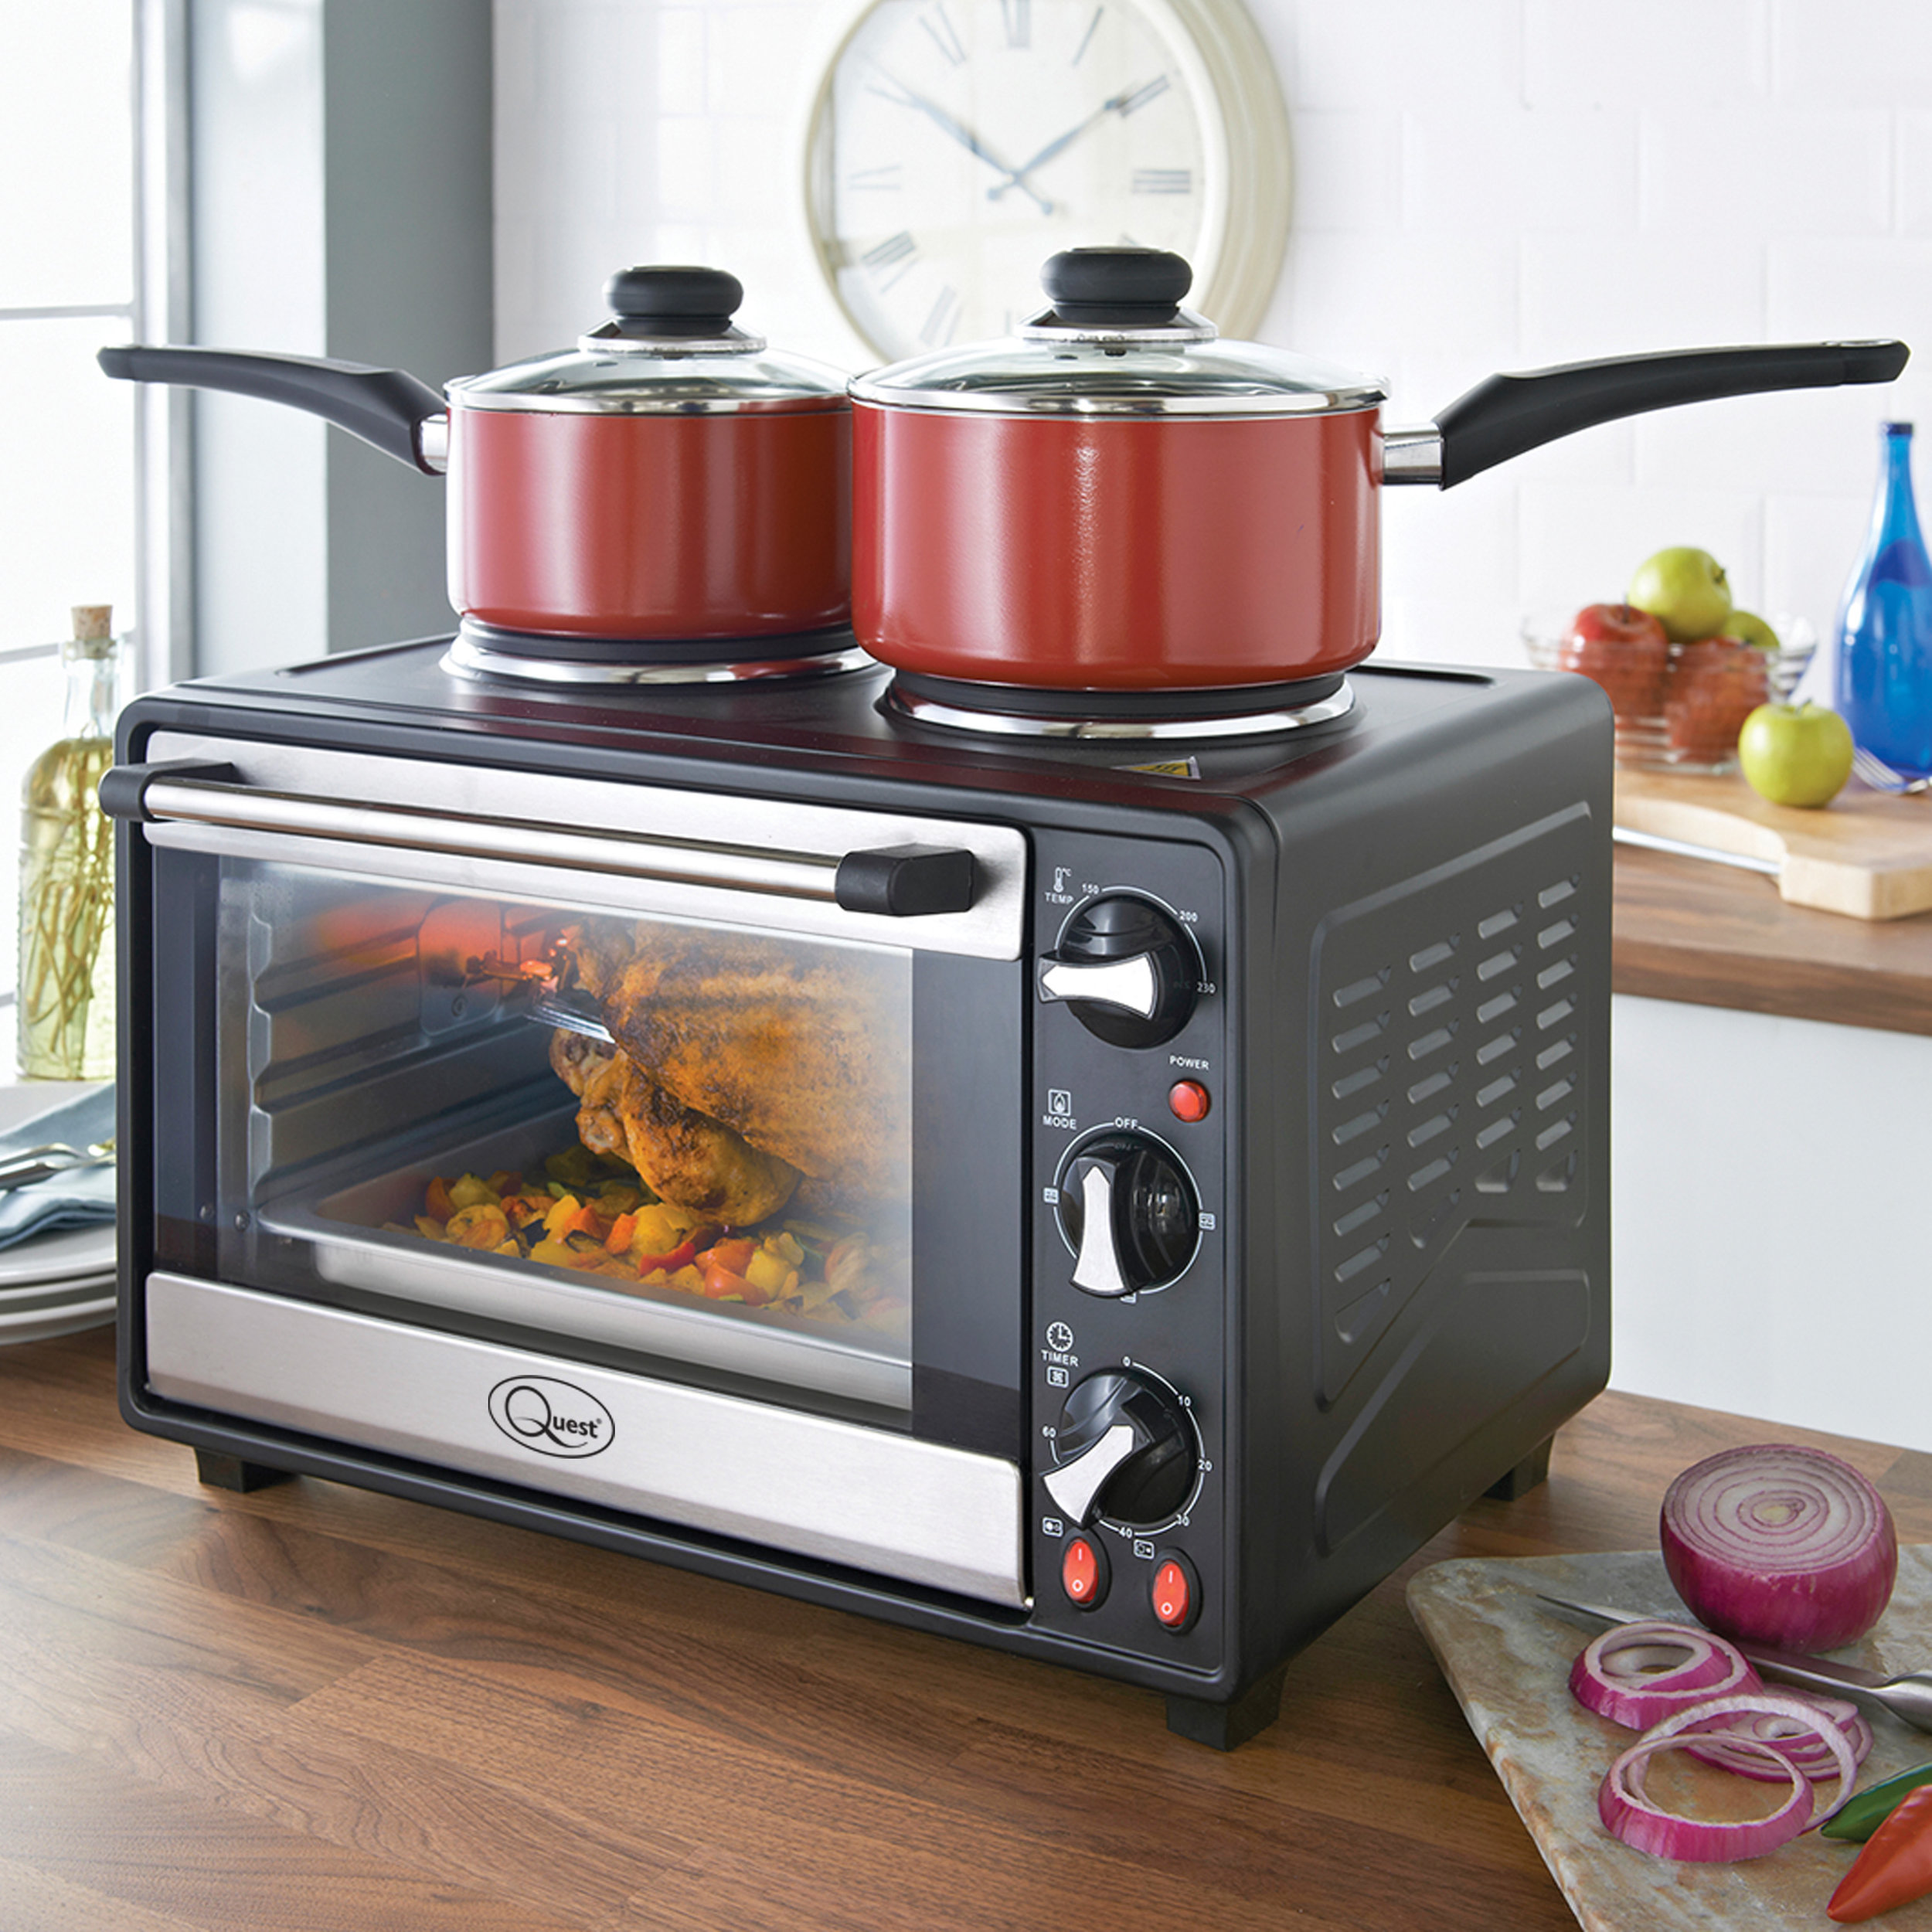 Twin Hob Convection Oven in the kitchen with two hobs